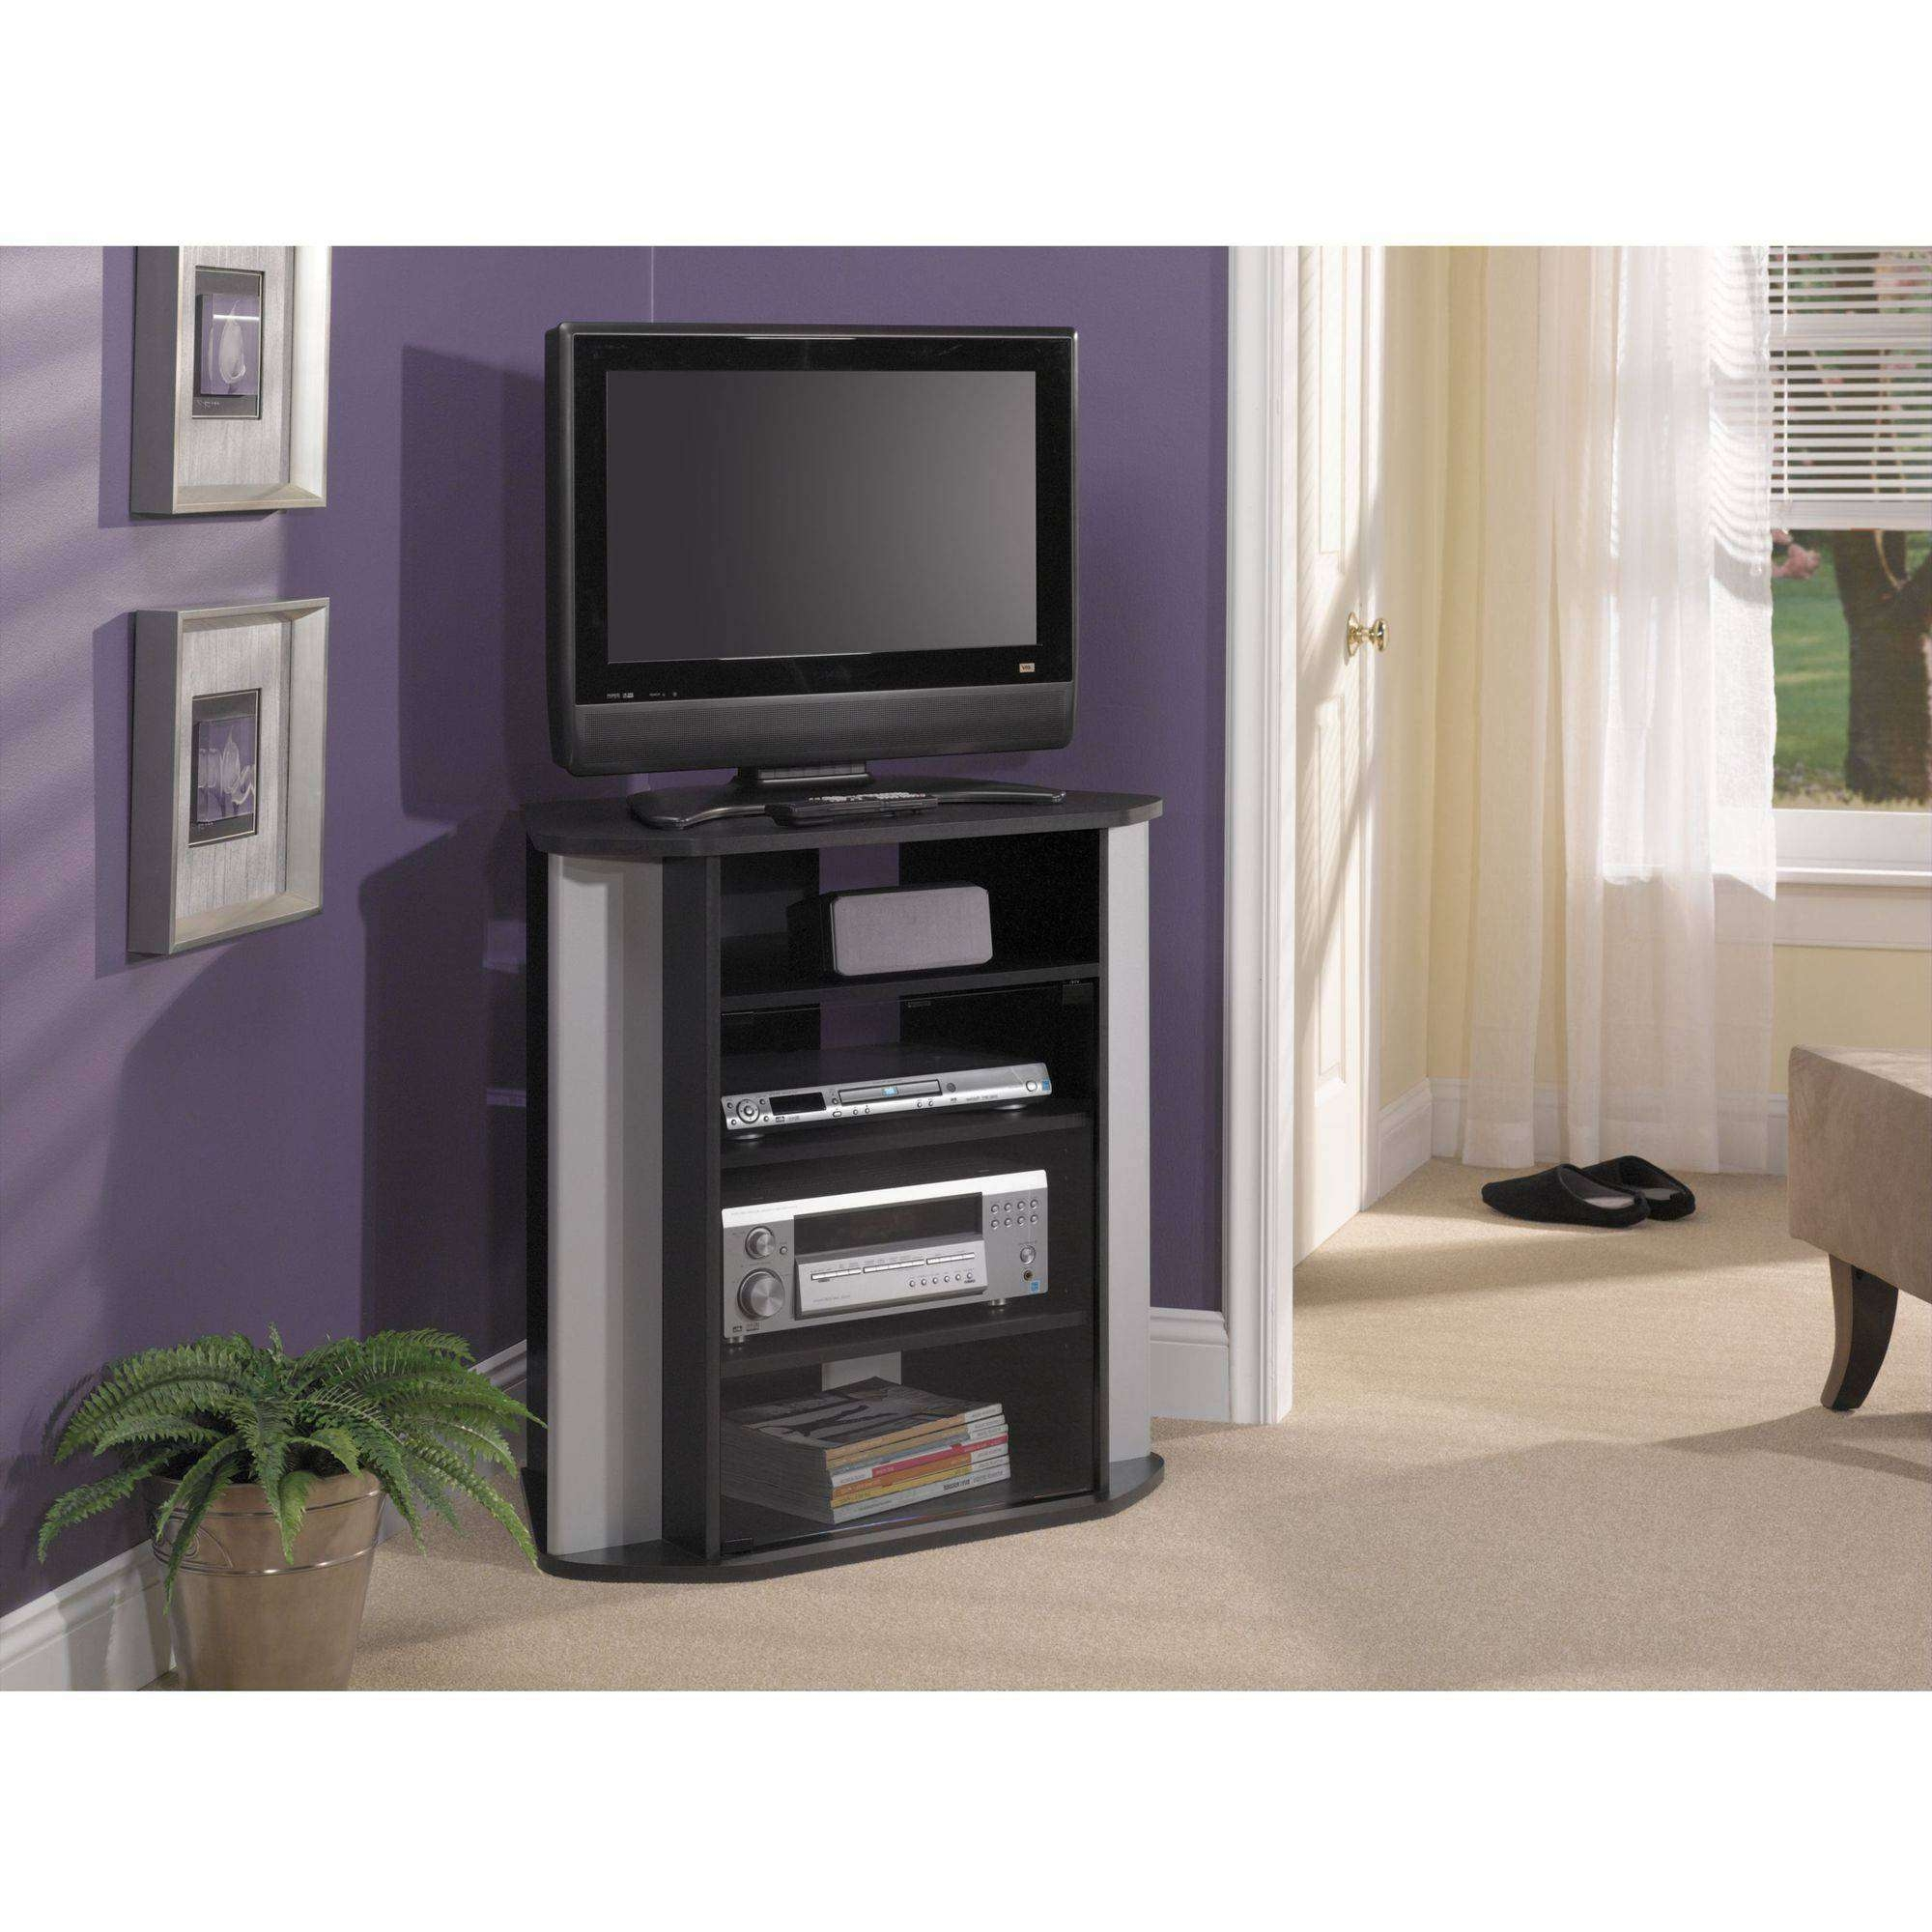 Bush Visions Black Tall Corner Tv Stand, For Tvs Up To 37 Regarding White Small Corner Tv Stands (View 5 of 15)